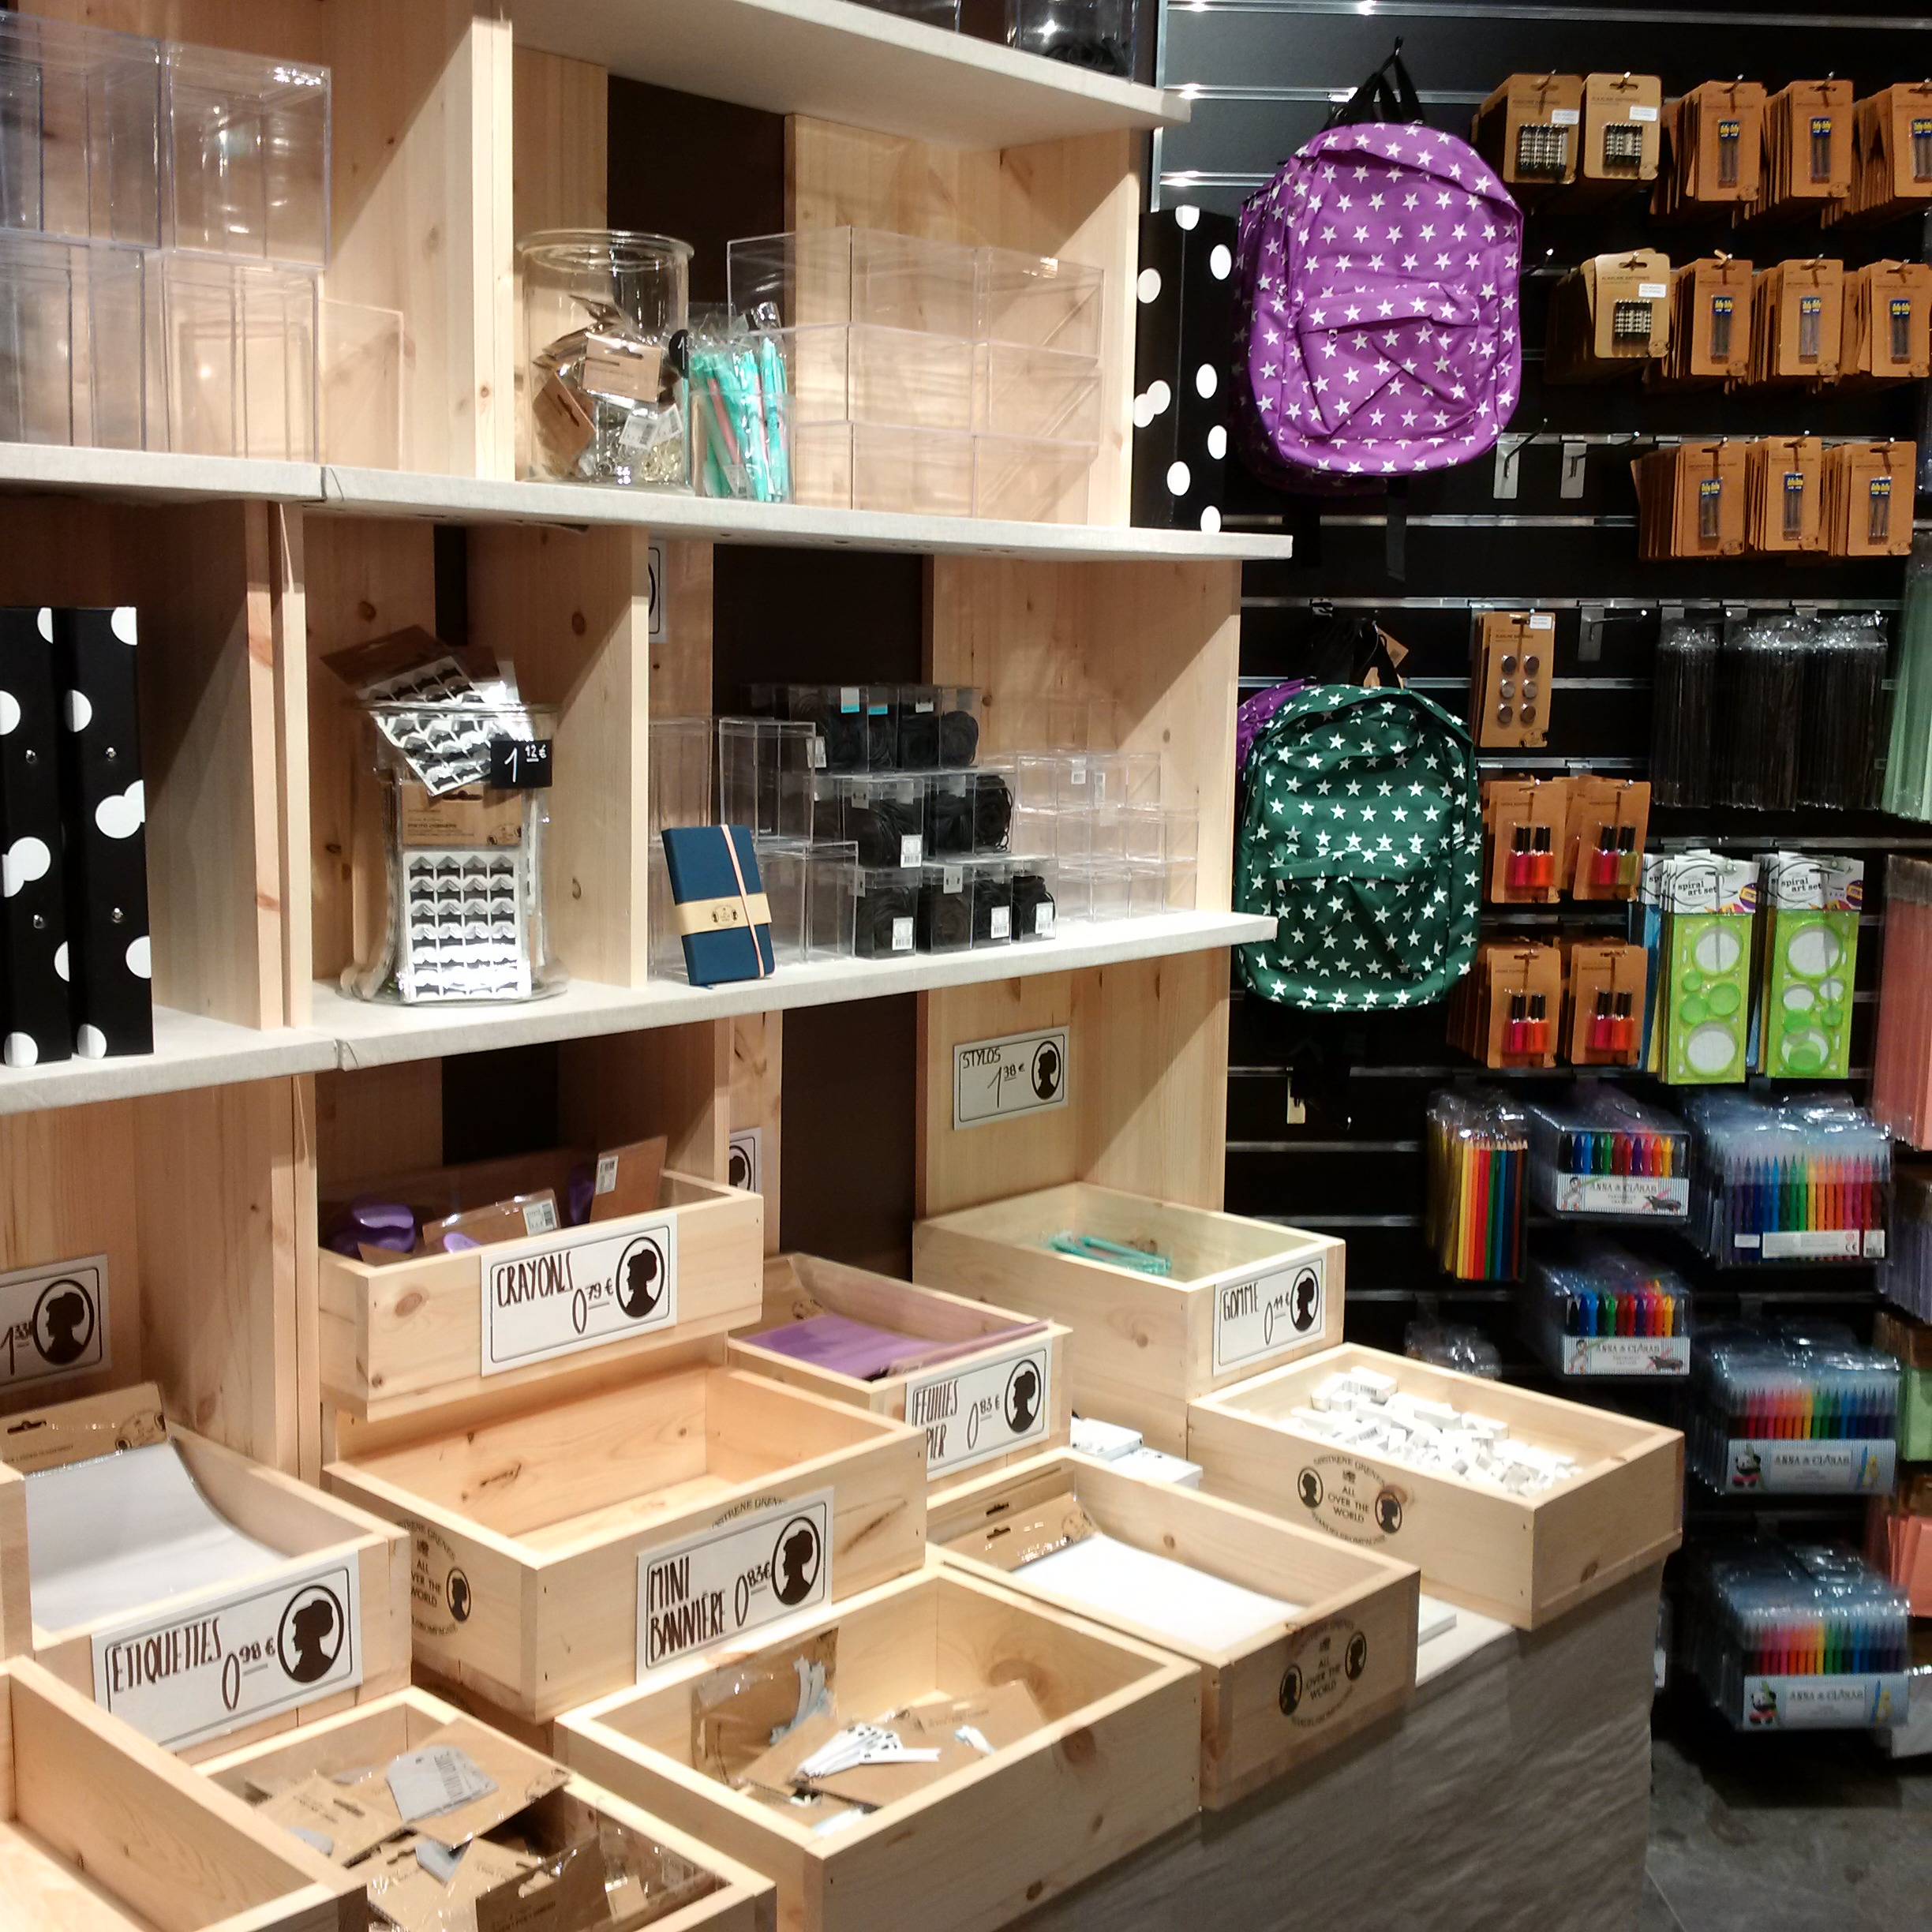 Magasin Sostrene Grene Lyon Part-Dieu